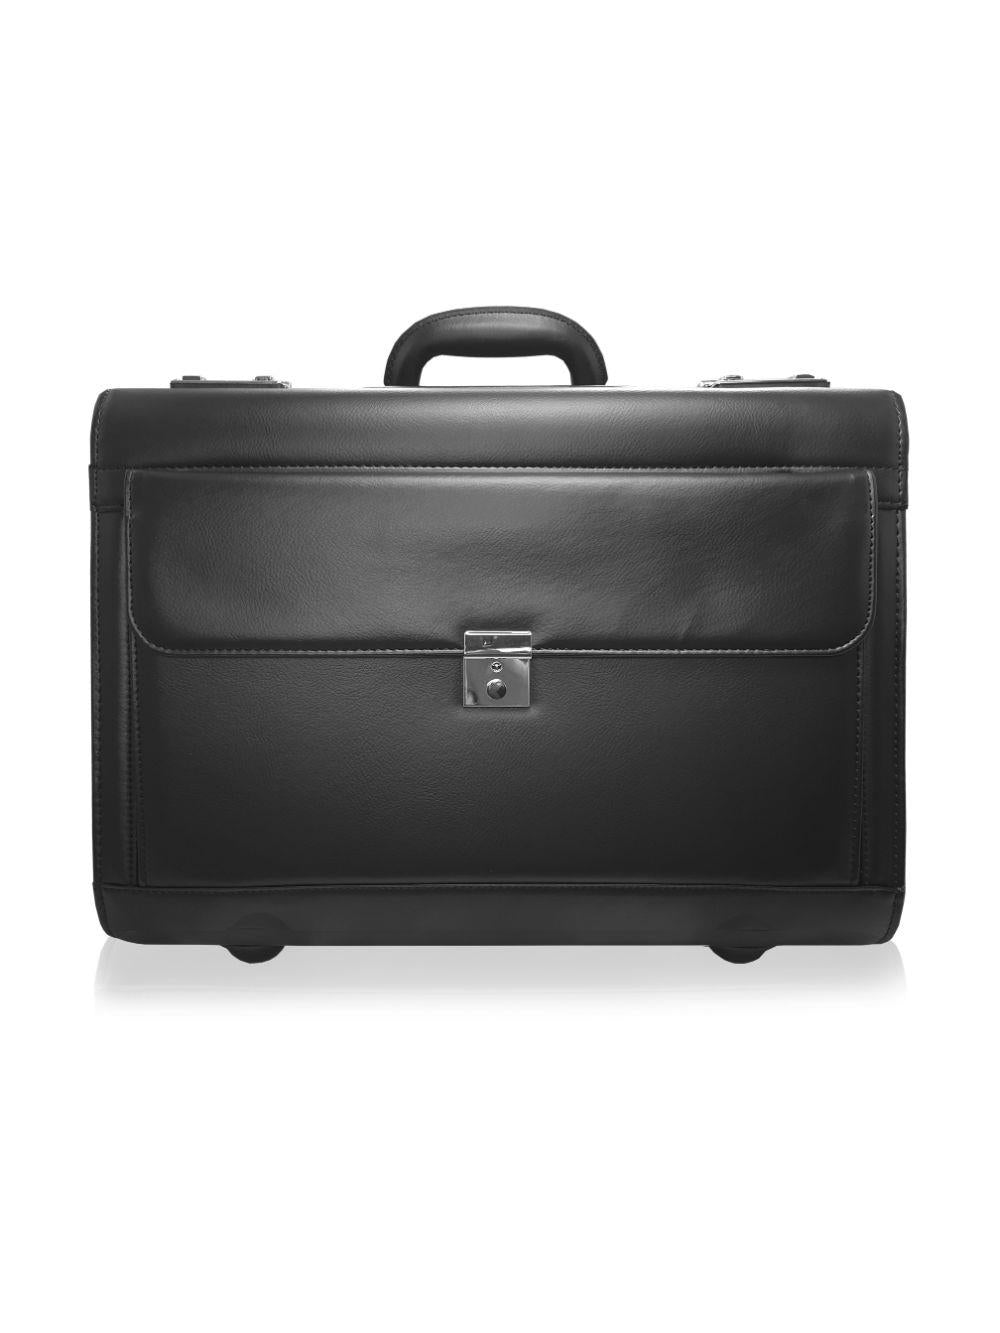 Pilot Briefcase Black RLPC9142K 2 Wheels FRONT